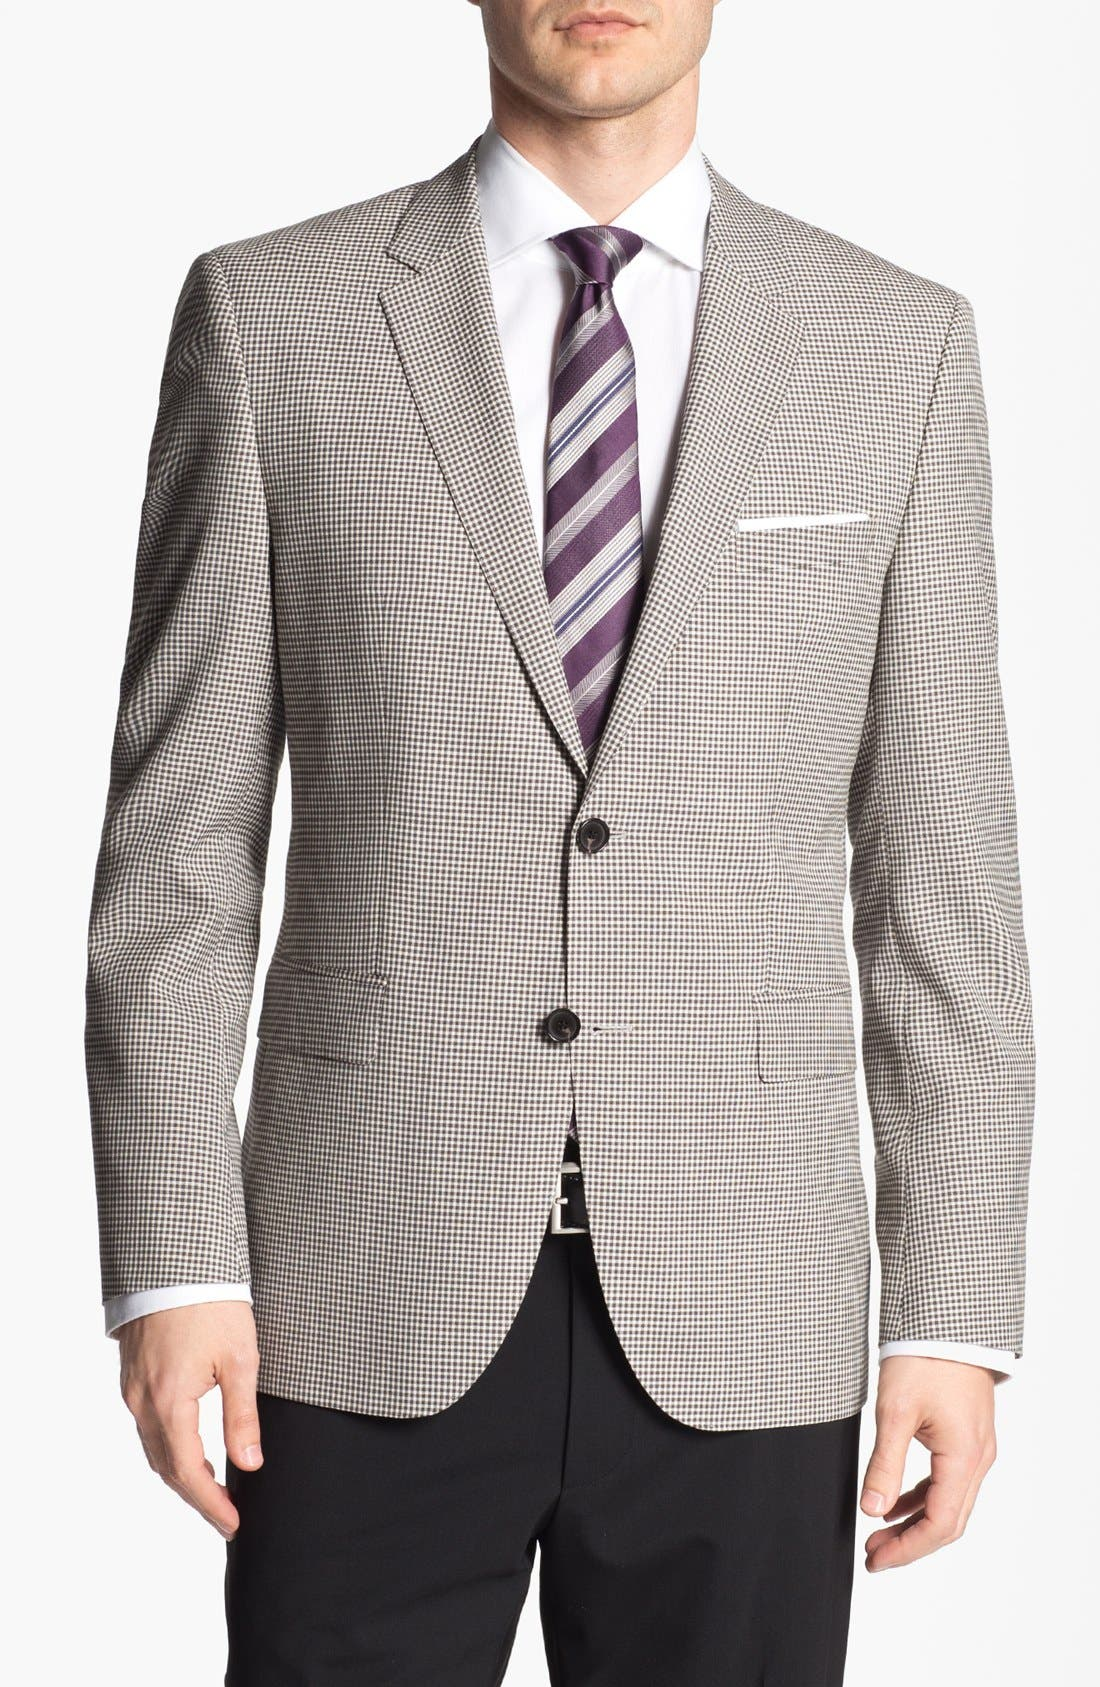 Alternate Image 1 Selected - BOSS HUGO BOSS 'James' Trim Fit Check Sportcoat